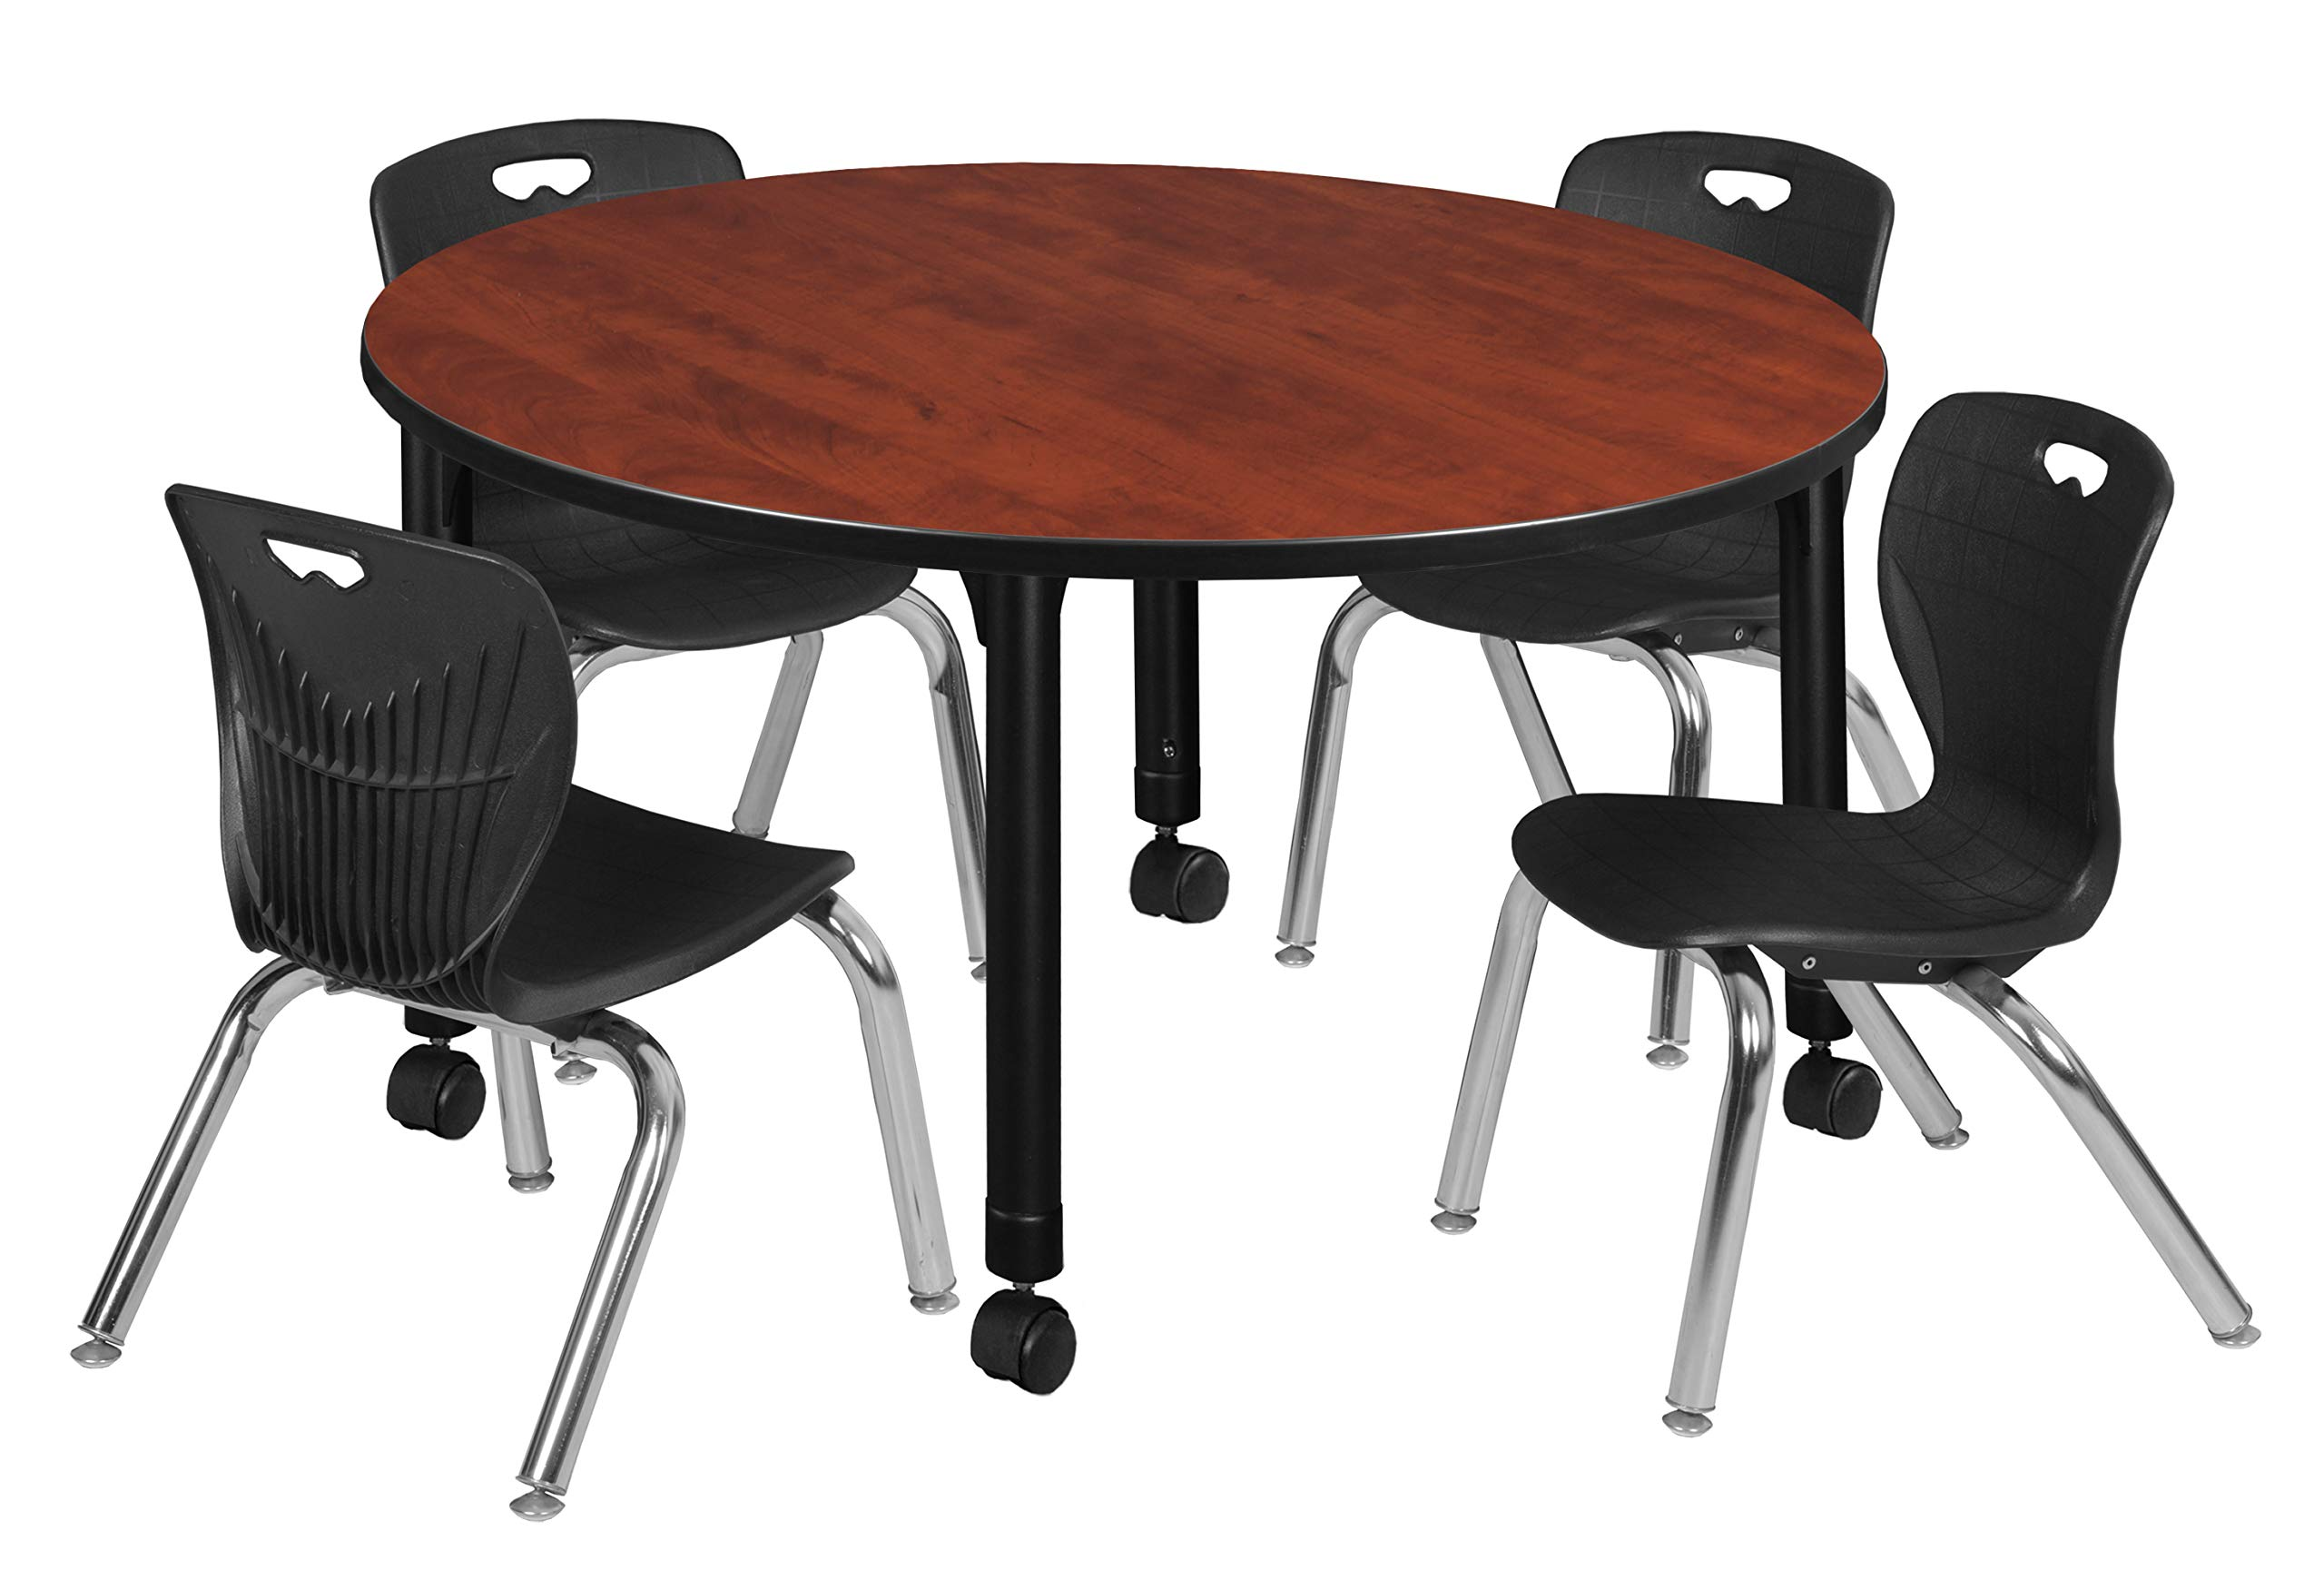 Regency TB48RNDCHAPCBK45BK Kee Height Adjustable Mobile Classroom Table Set with Four 12'' Andy Chairs 48'' Cherry/Black